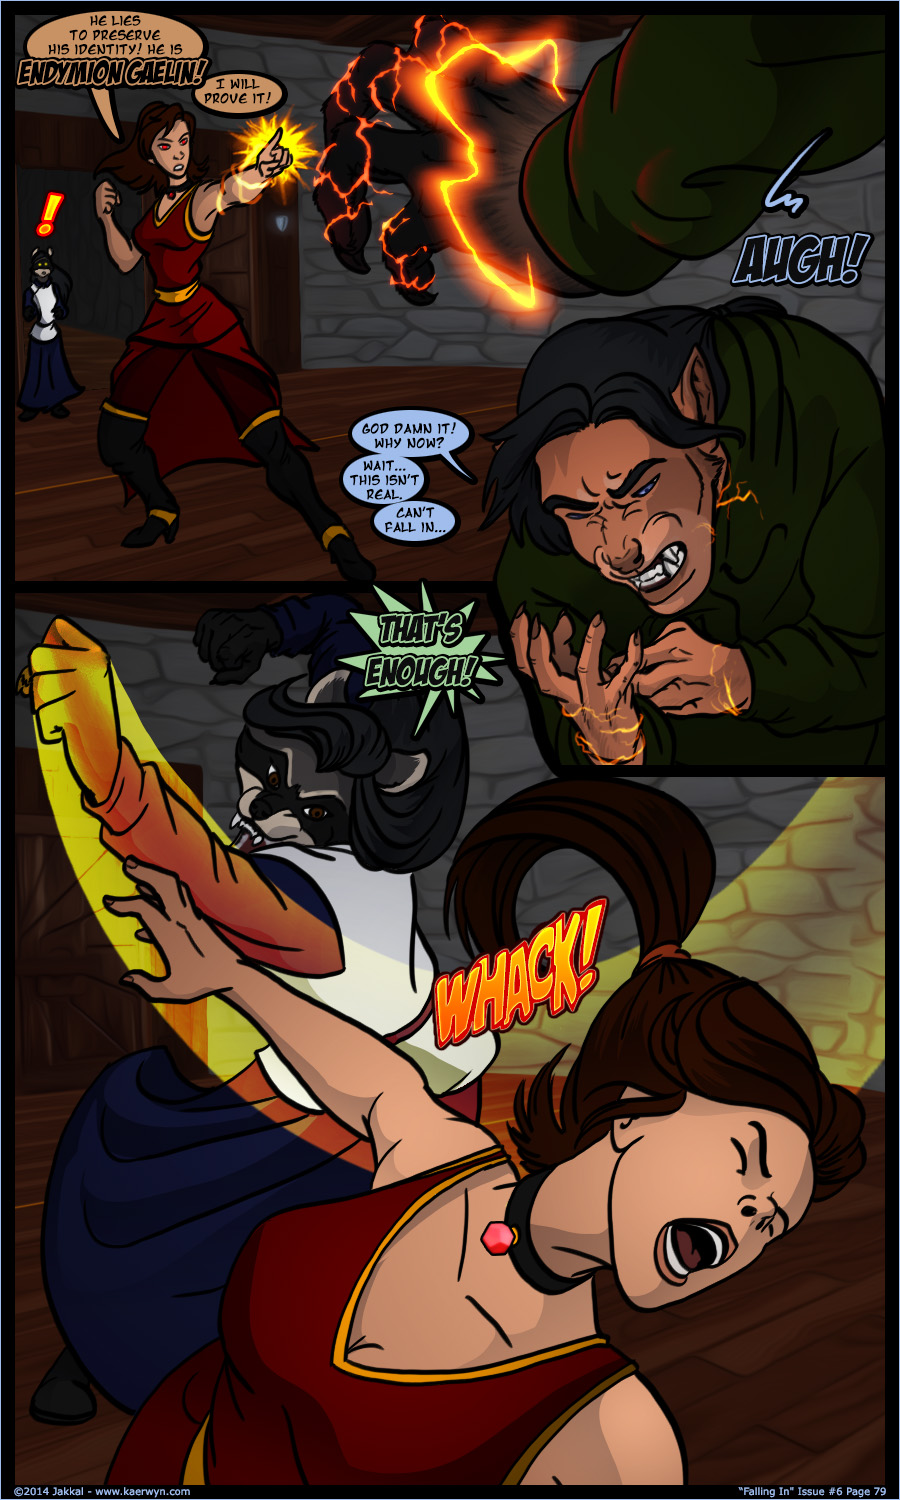 Issue 6 Page 79